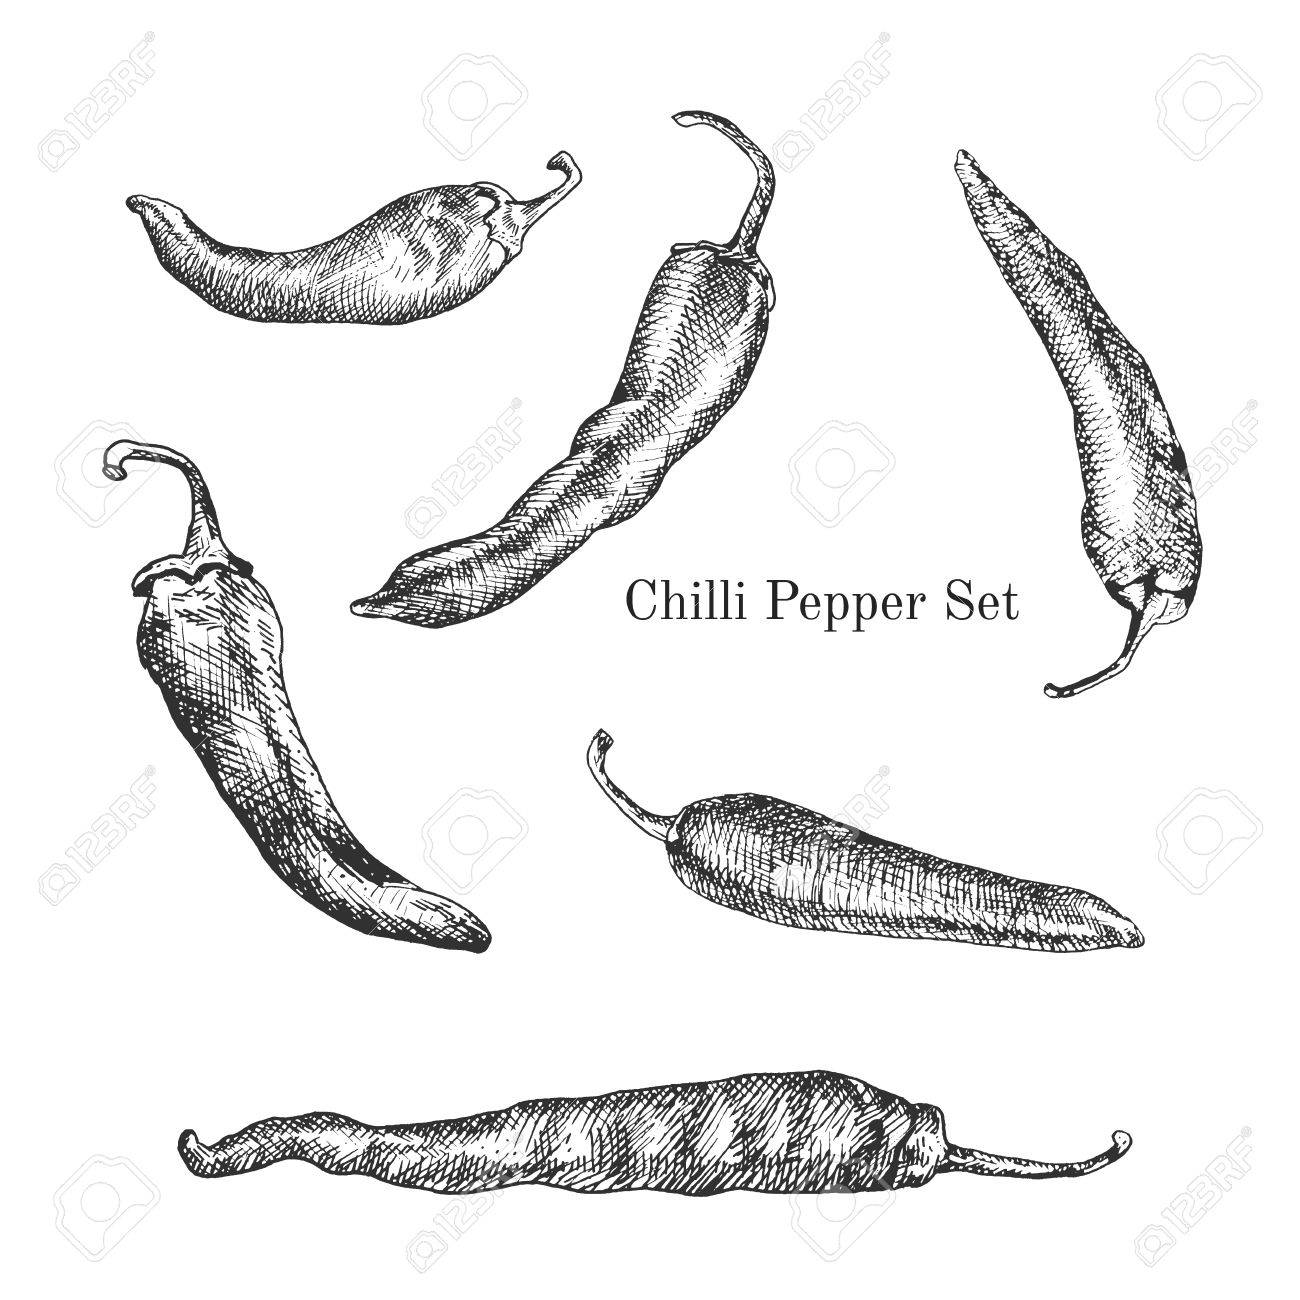 Chilli peppers ink sketches set. Contour outline style - 52314665